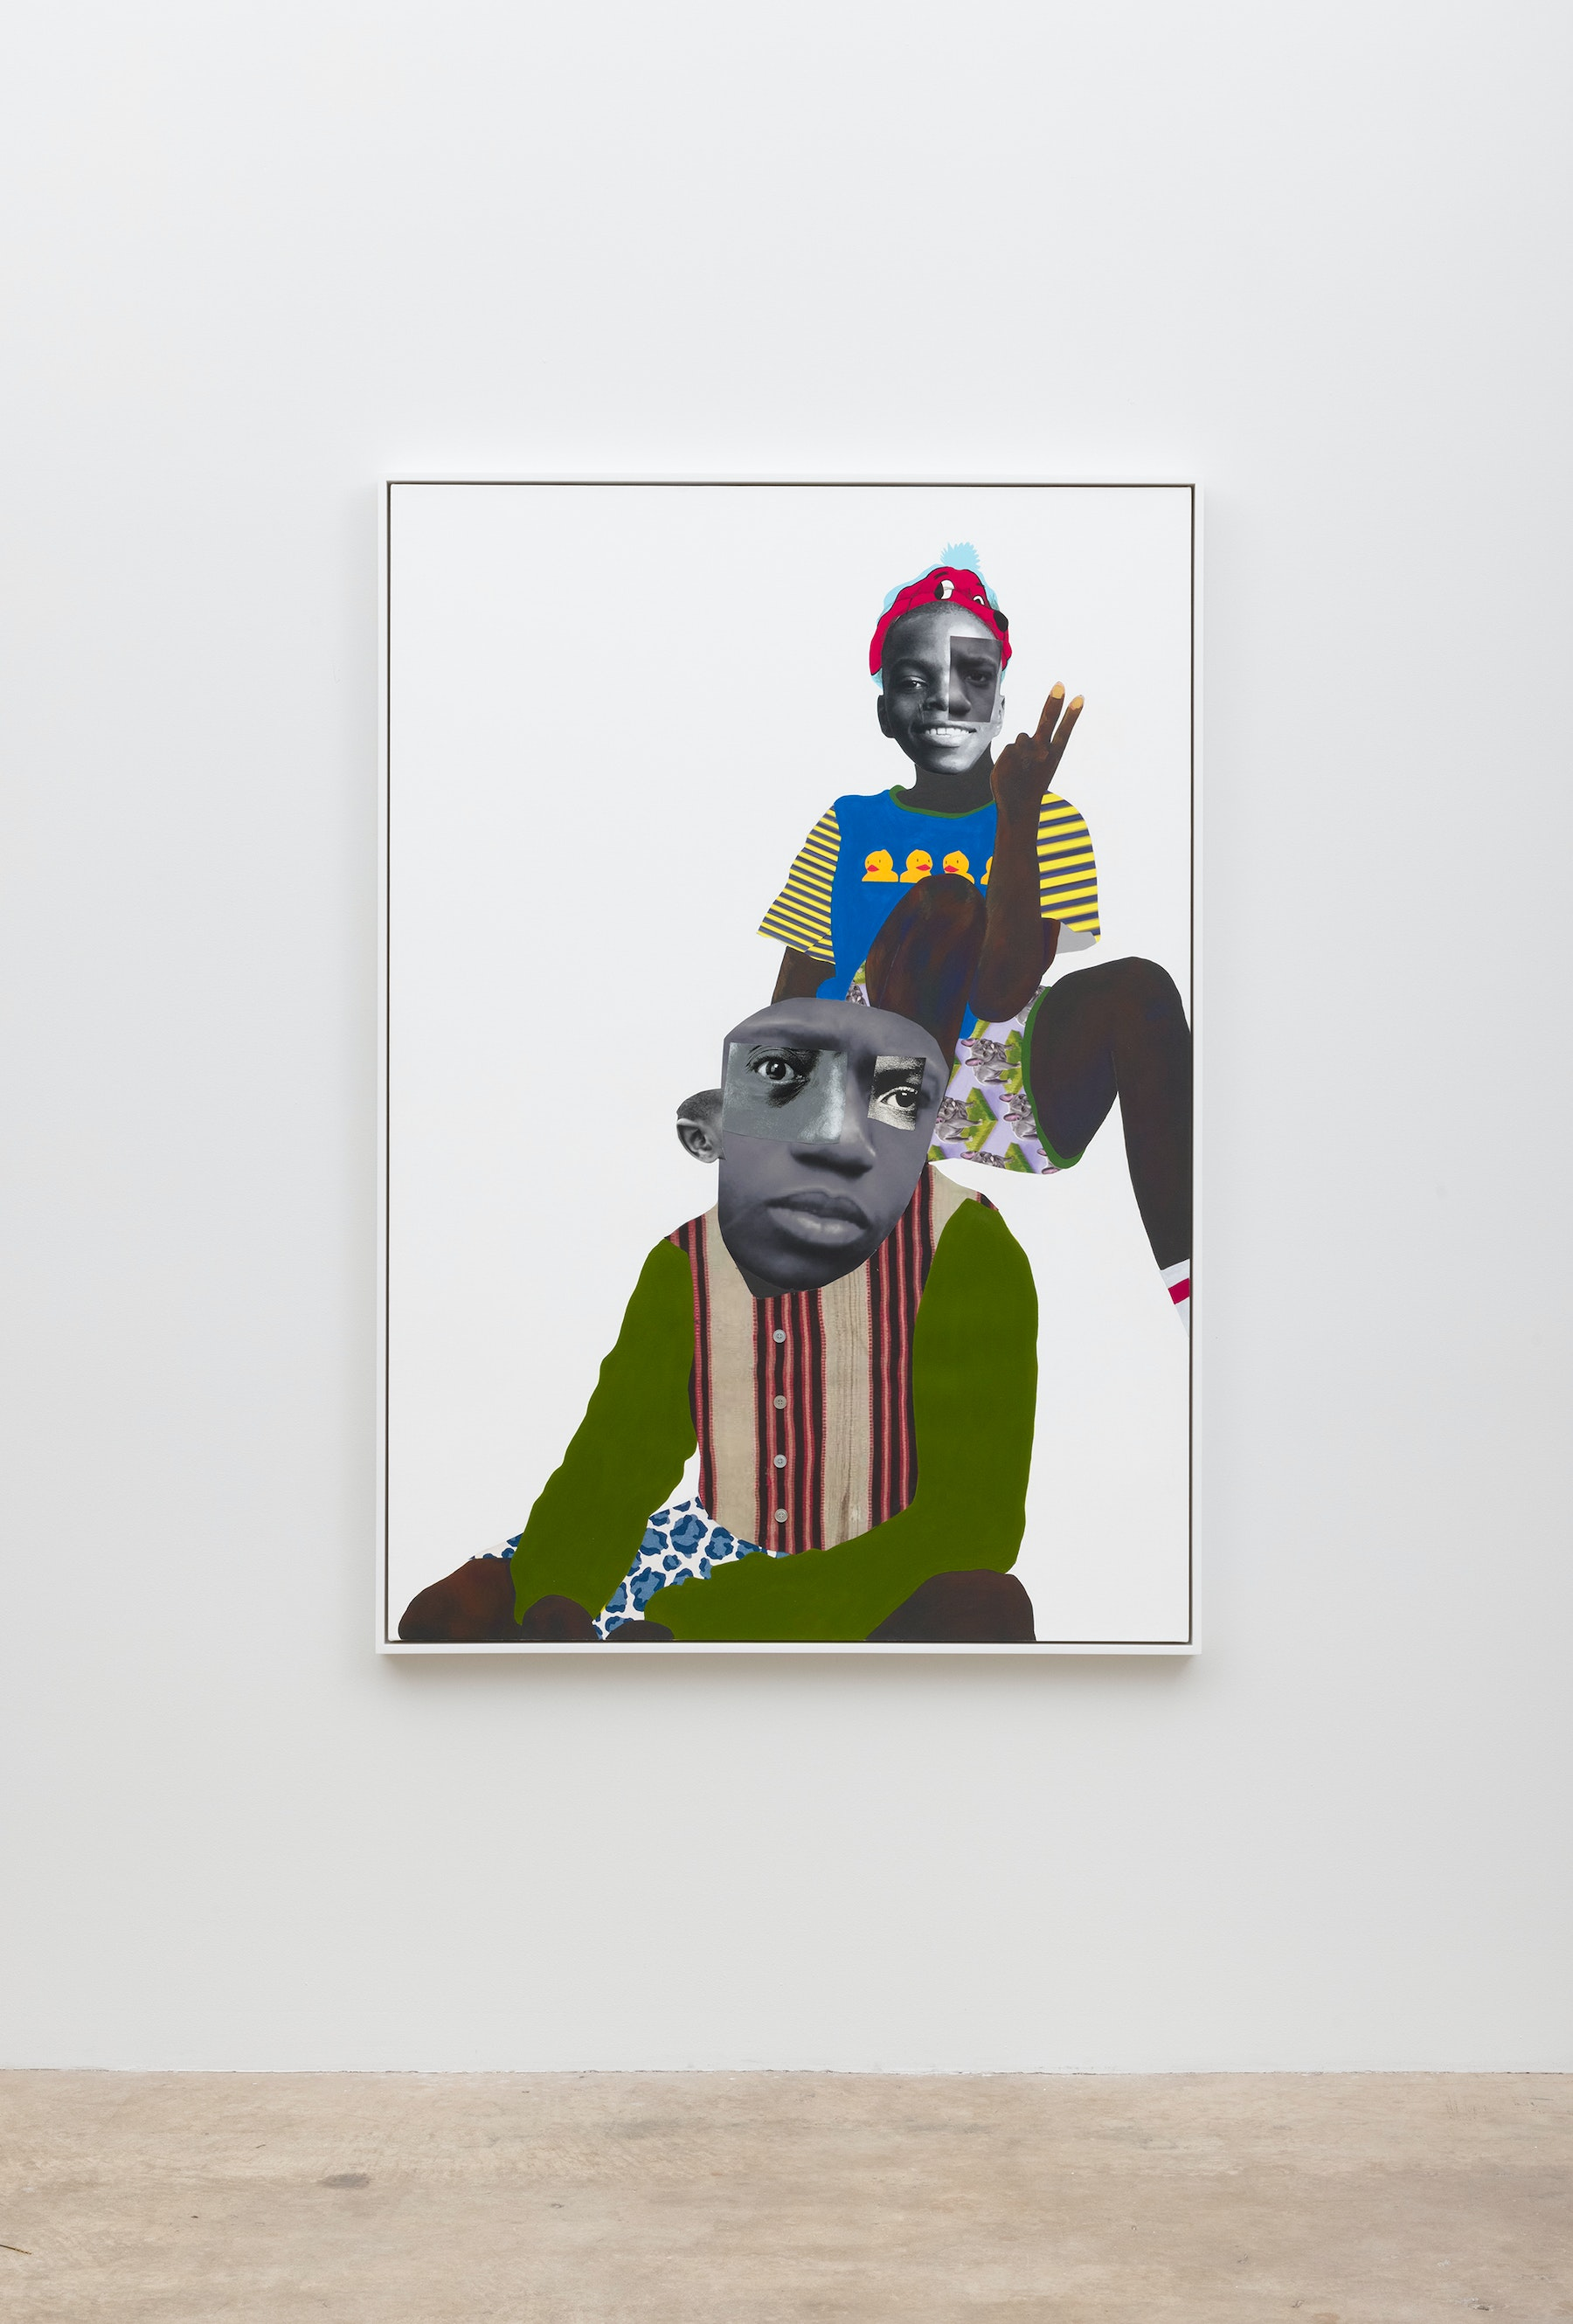 """Deborah Roberts """"Notorious Act: at play,"""" 2021 Mixed media collage on canvas 65"""" x 45"""" [HxW] (165.1 x 114.3 cm); 66 ¹⁄₂"""" x 46 ¹⁄₂"""" x 2 ¹⁄₄"""" [HxWxD] (168.91 x 118.11 x 5.71 cm) framed Inventory #ROB456 Courtesy of the artist and Vielmetter Los Angeles Photo credit: Jeff McLane"""